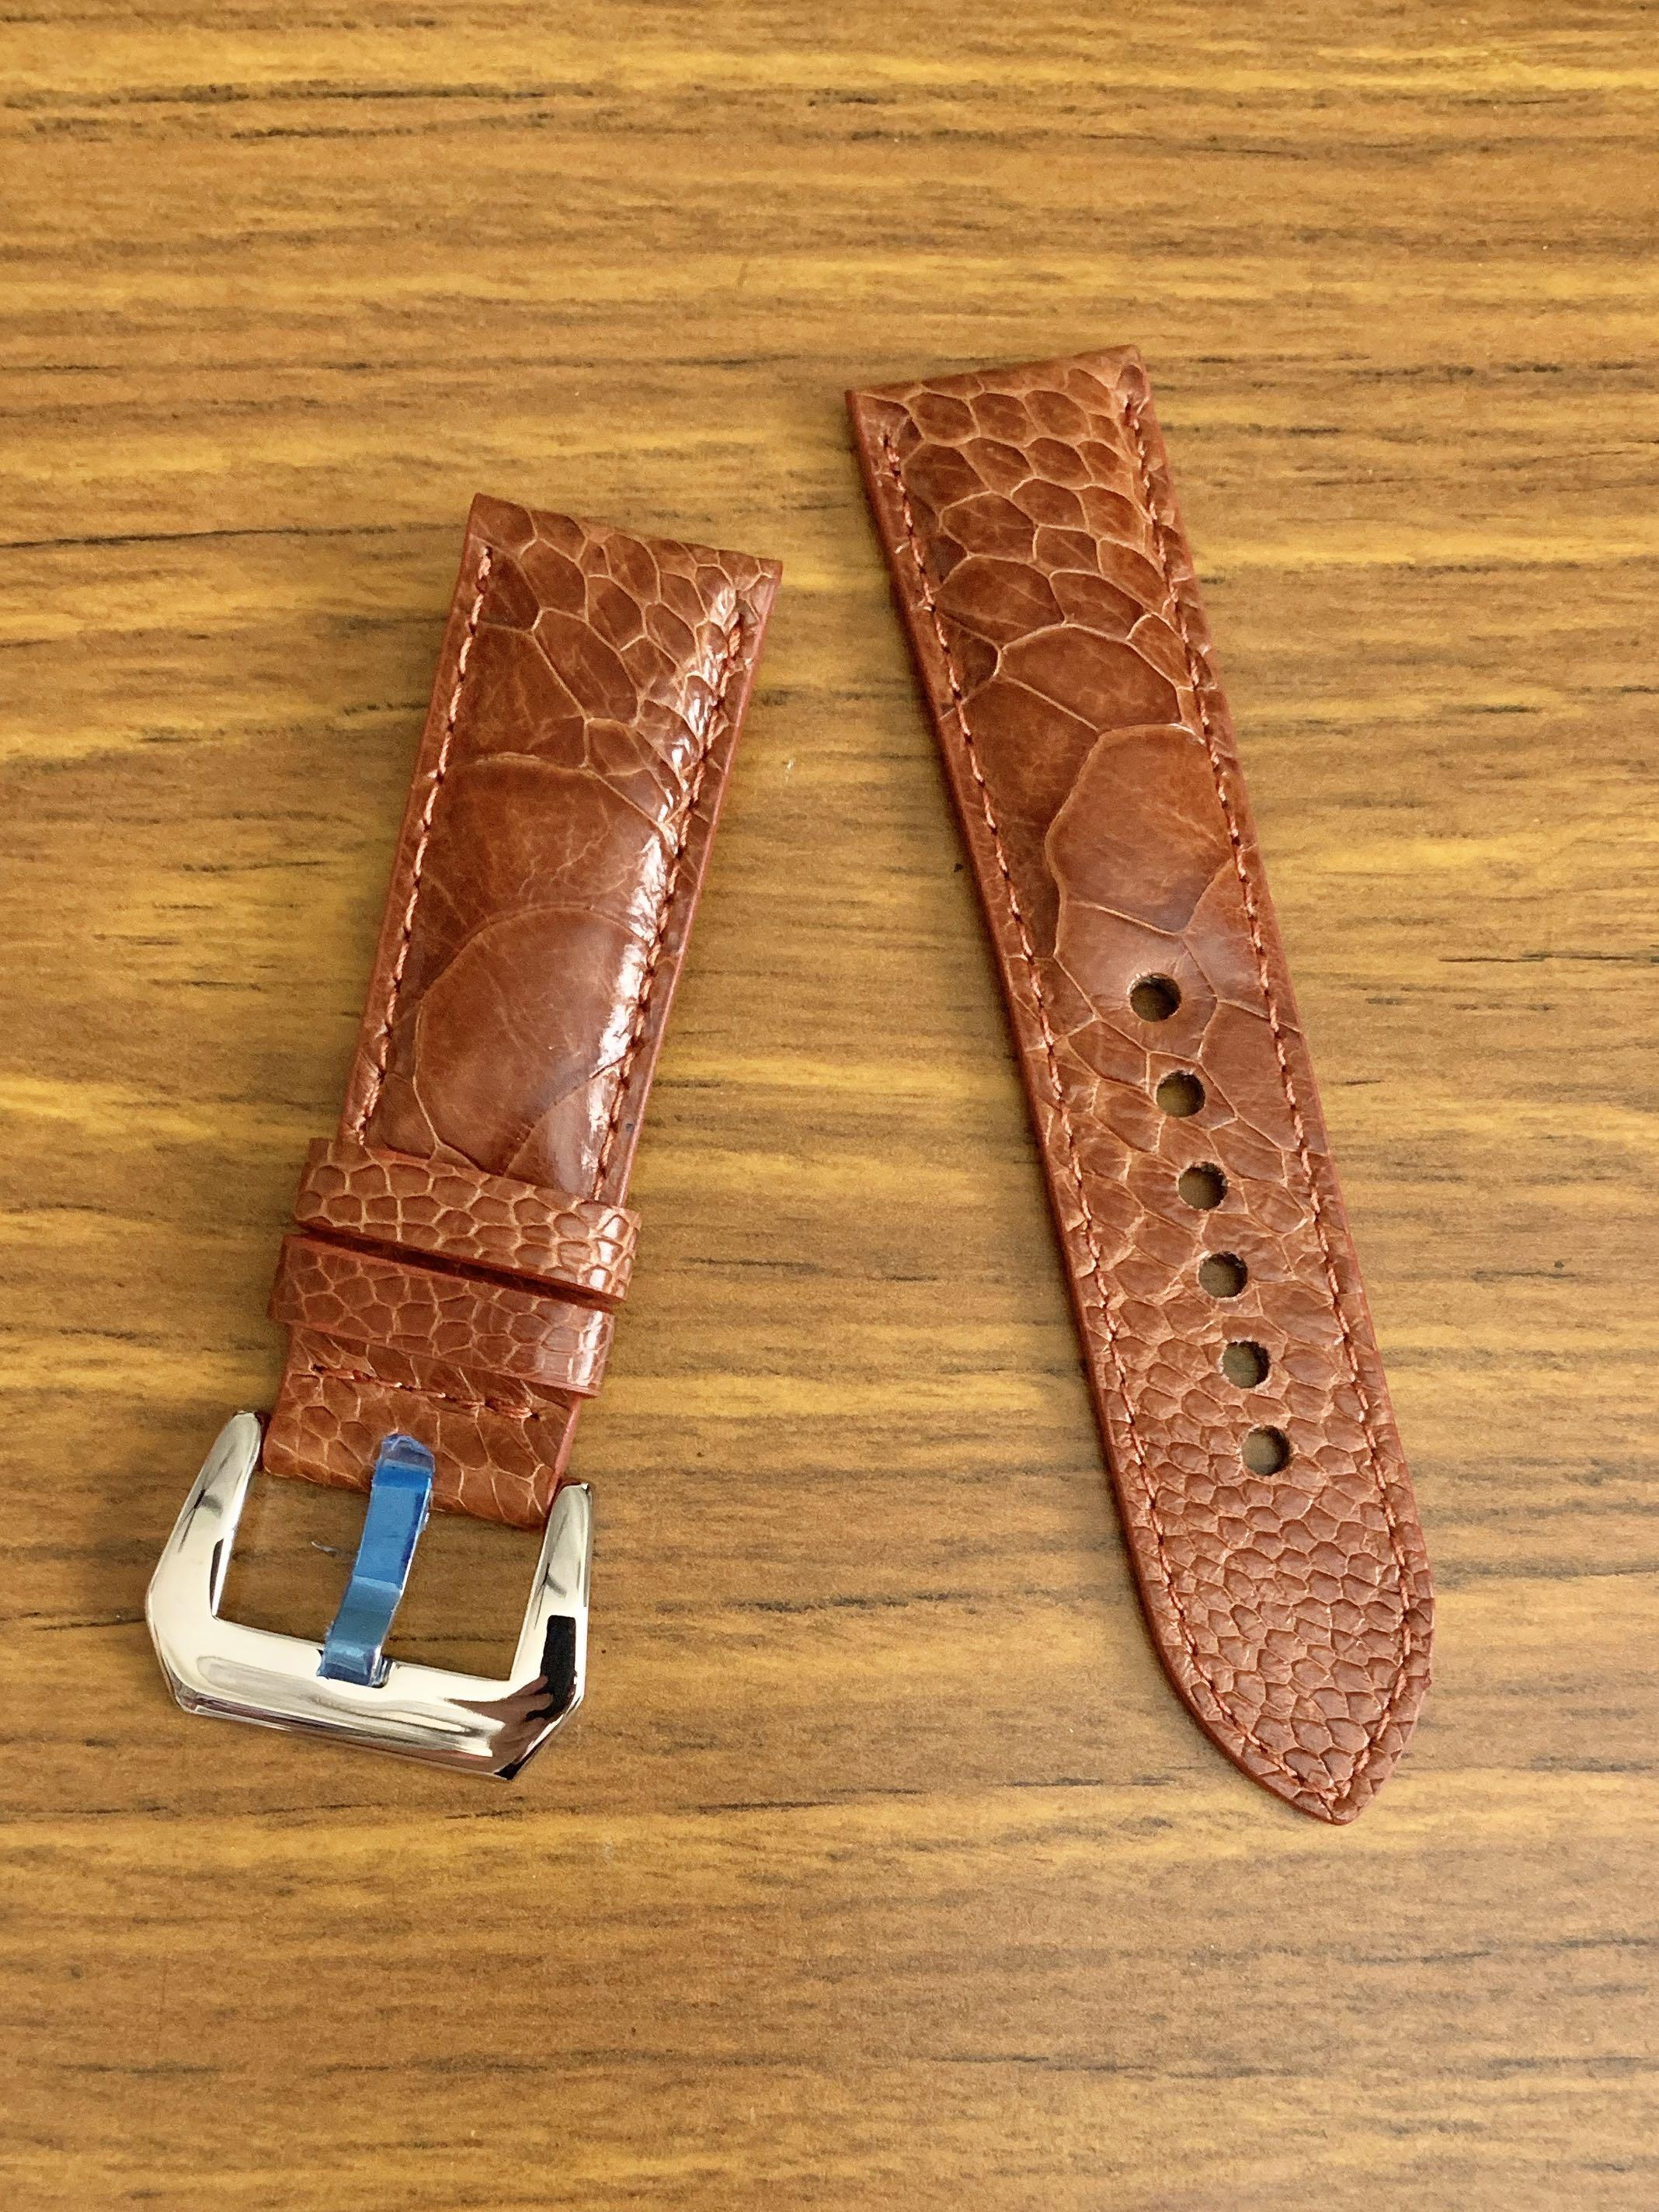 [AVAILABLE] 24mm/22mm Authentic Whiskey Brown Ostrich Leg (big scales) Leather Watch Strap (gorgeous scales L-120mm, S-75mm) IF RESERVED, PLS SCREENSHOT THIS ITEM AND TEXT US THRU AN ACTIVE LISTING TO BUY 🤗 Tq 🙏🏻)